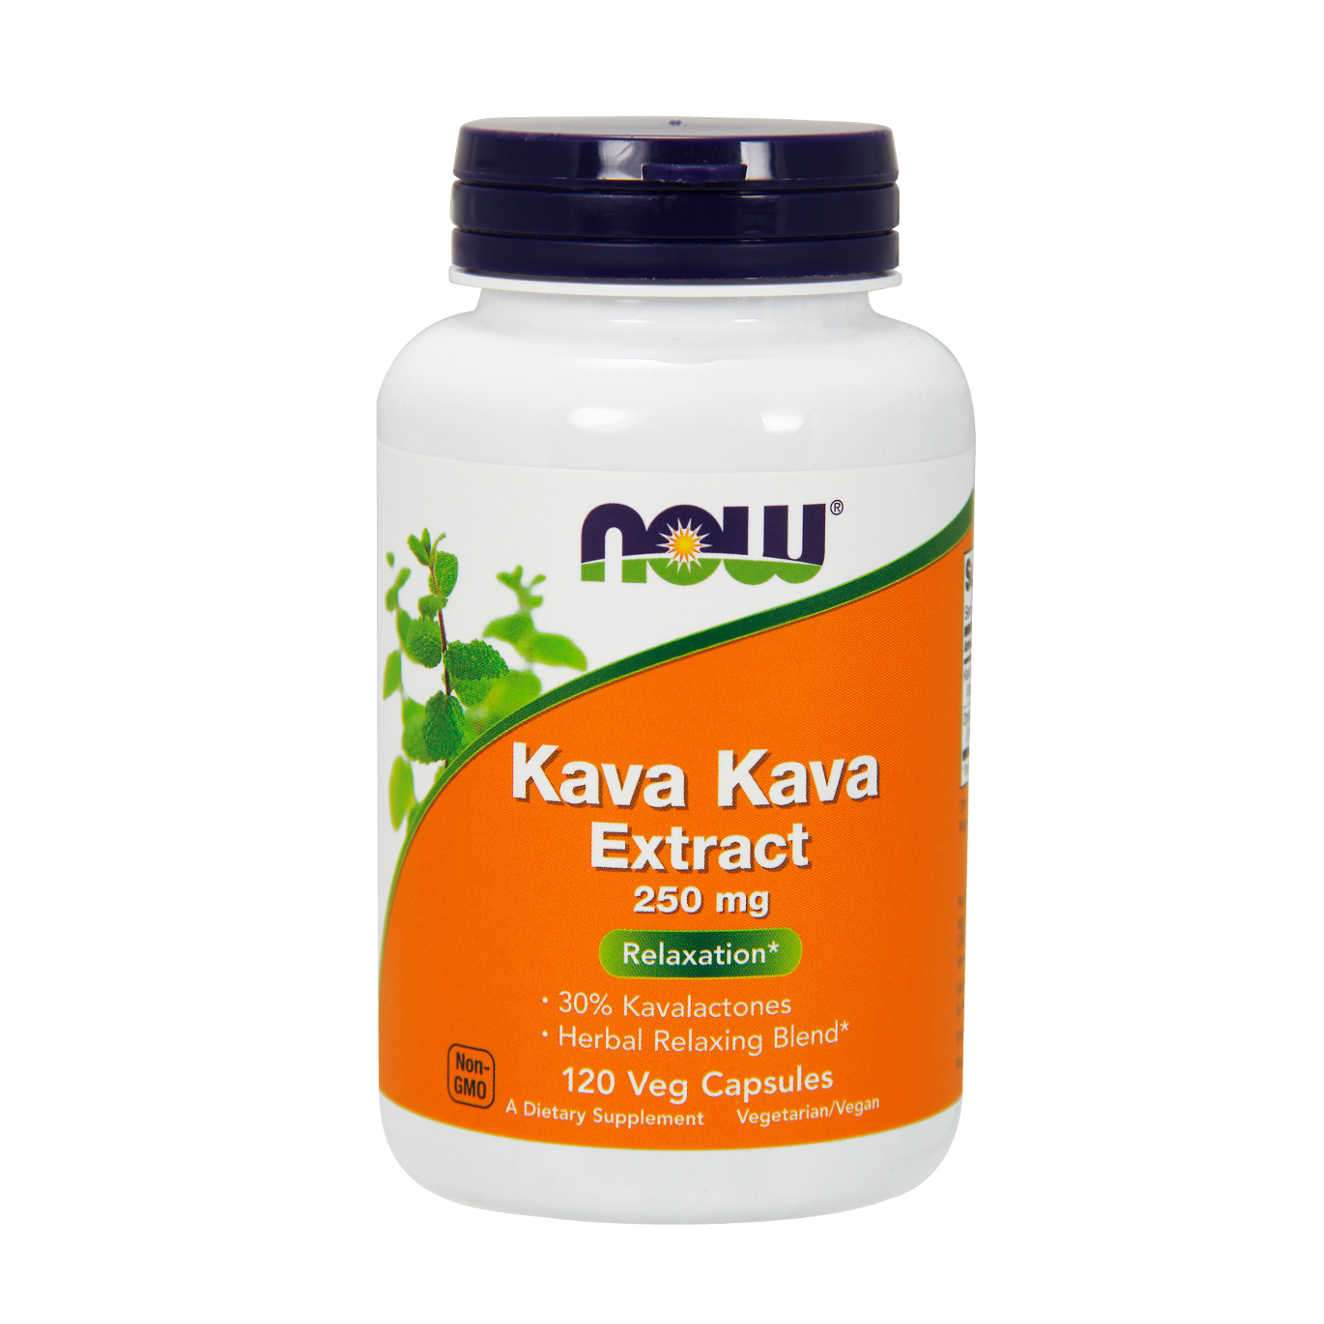 KAVA KAVA EXTRACT 250mg - 120 veg caps